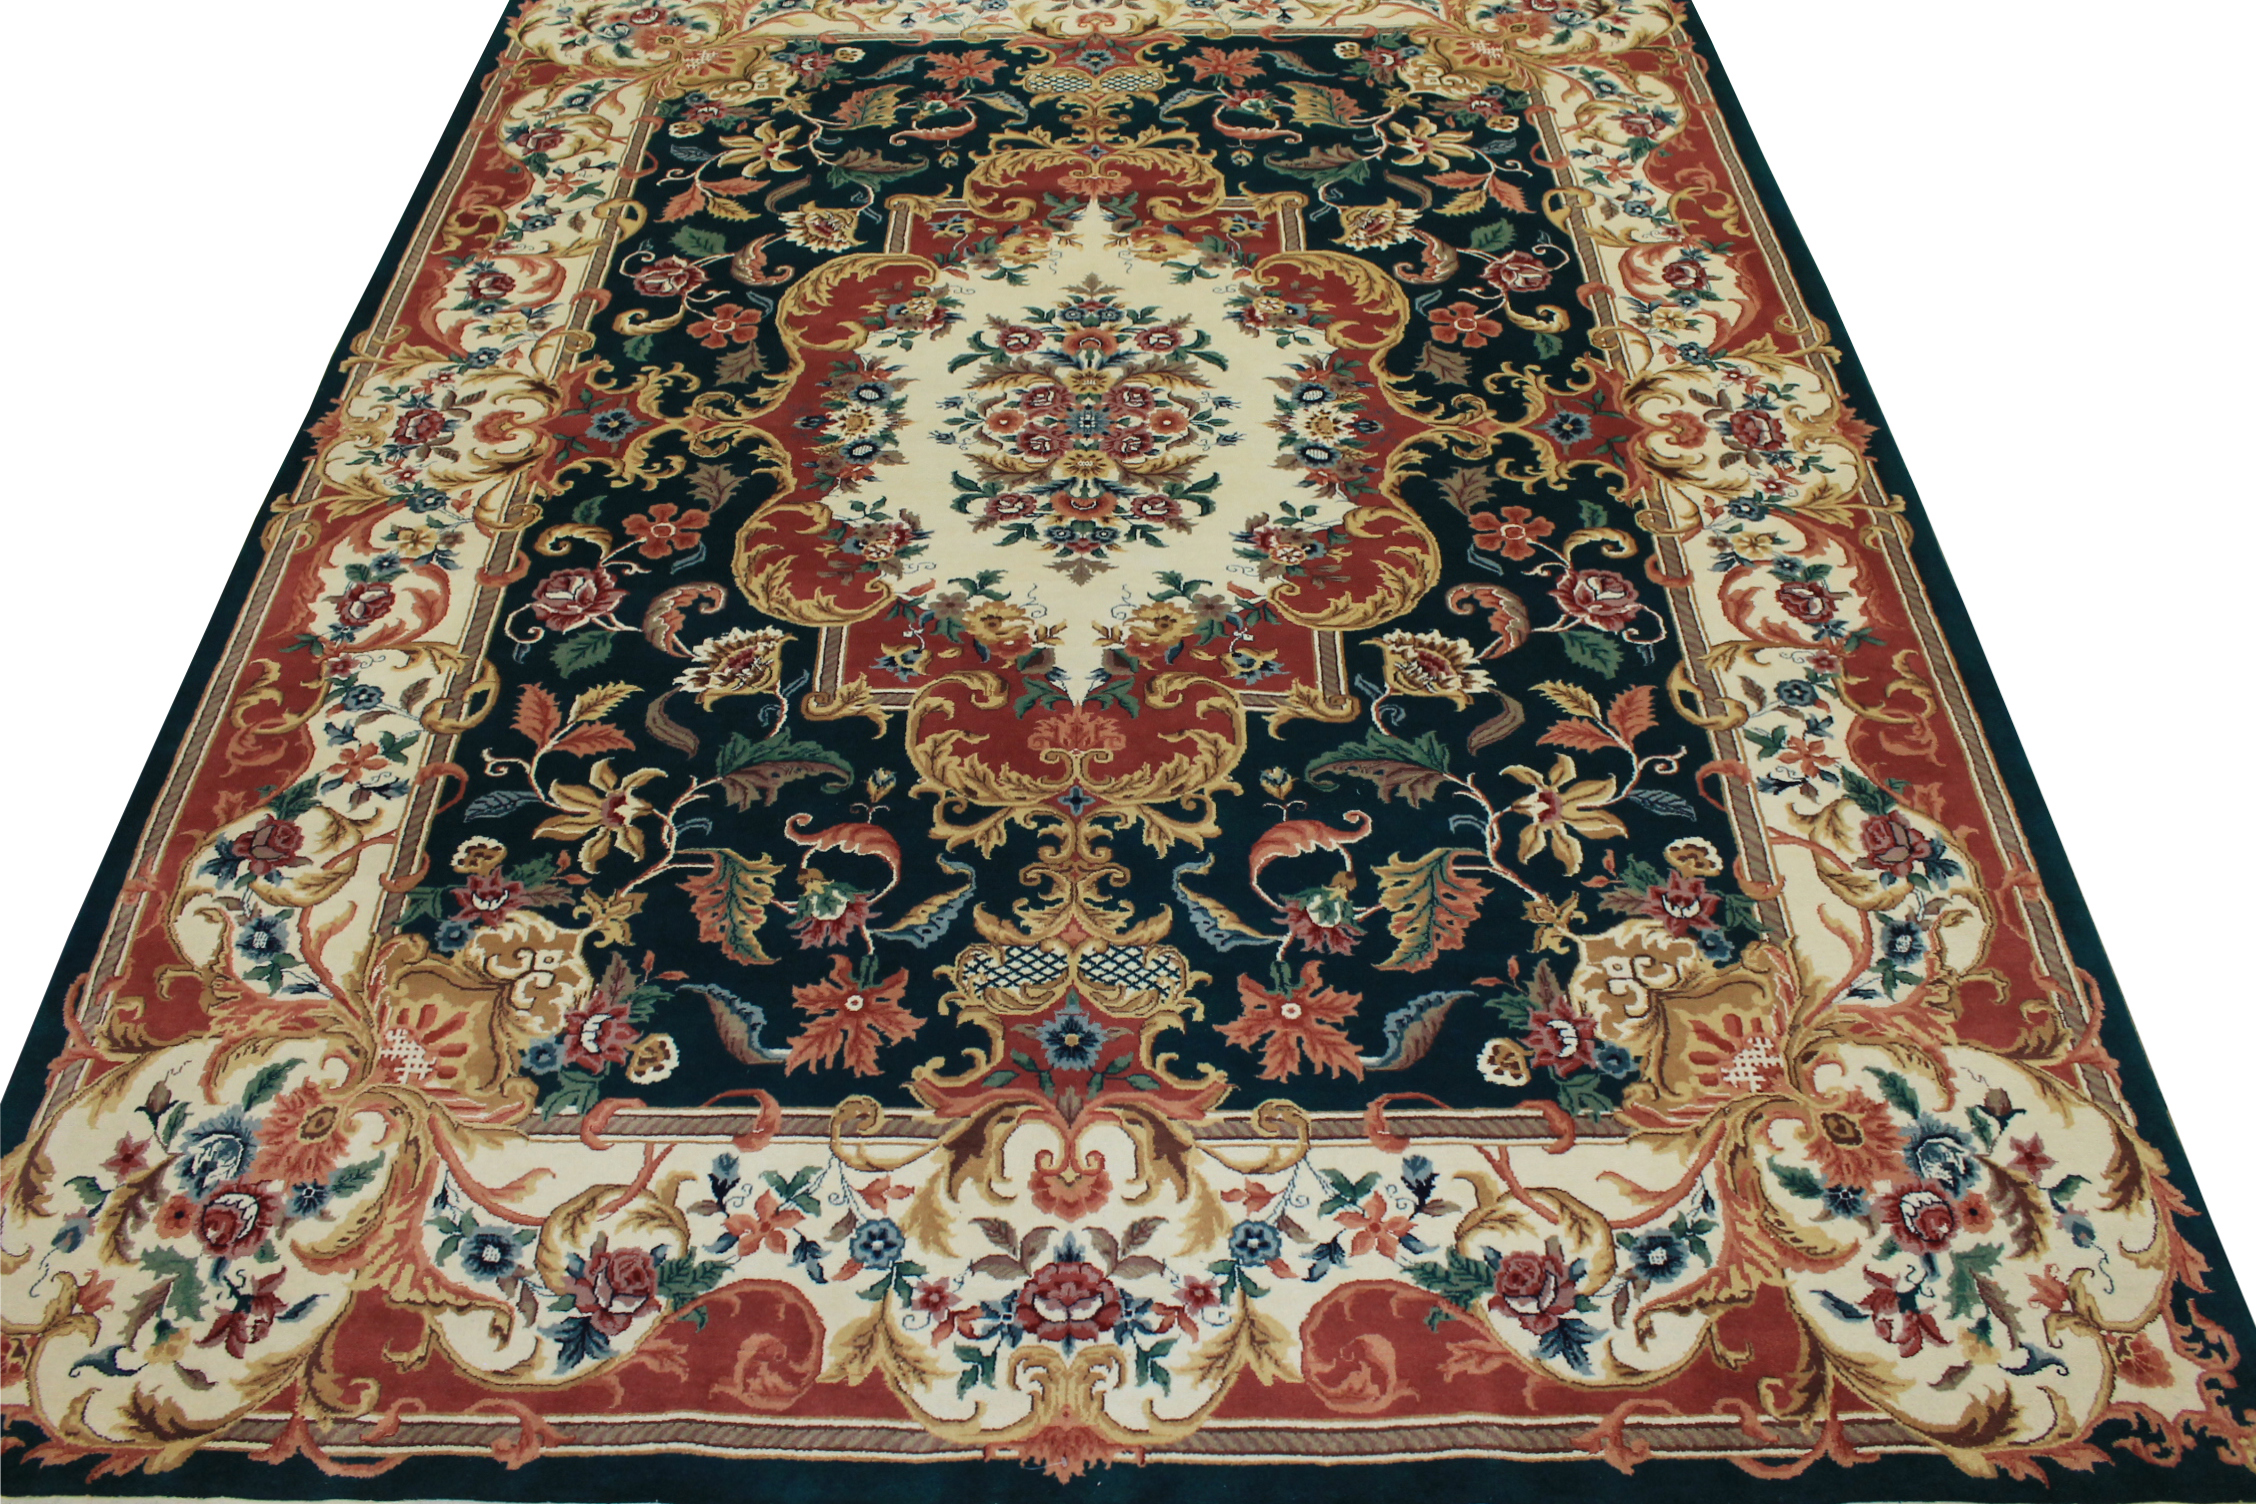 9x12 Traditional Hand Knotted Wool Area Rug - MR0771